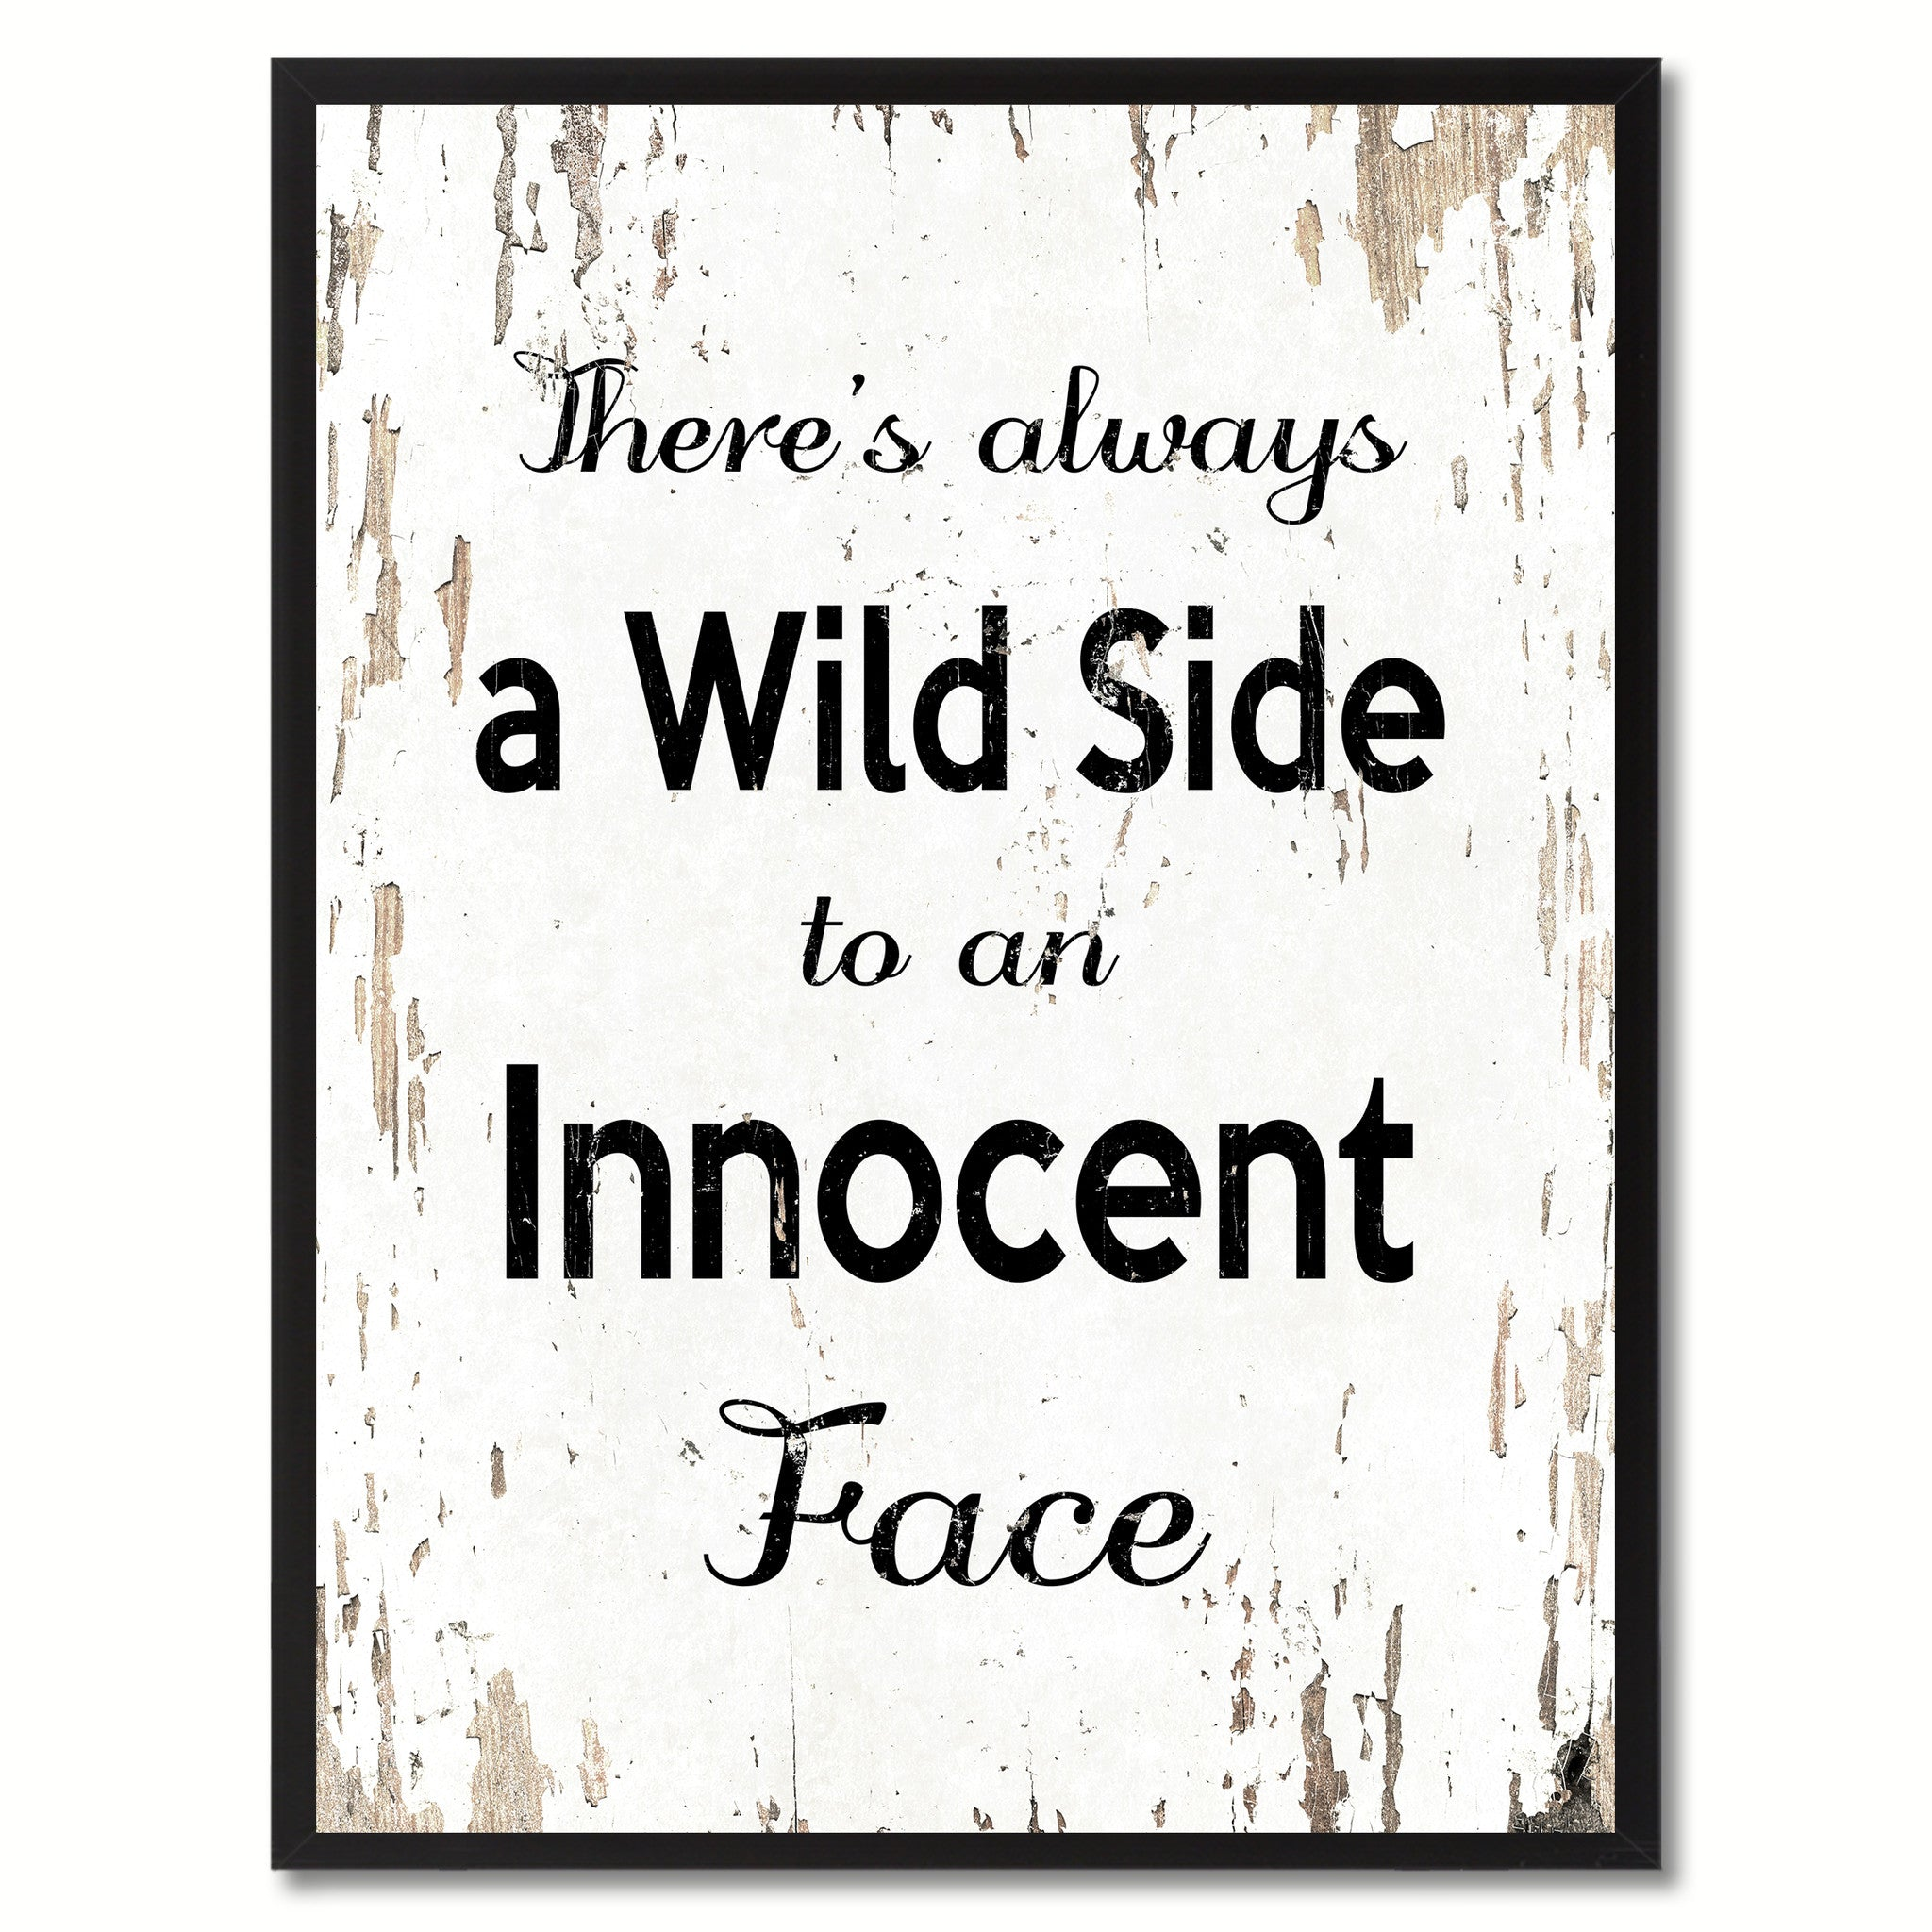 34004078a66f3 There s always a wild side to an innocent face Inspirational Motivation  Saying Quote Canvas Print Picture Frame Gift Home Decor Wall Art –  SpotColorArt